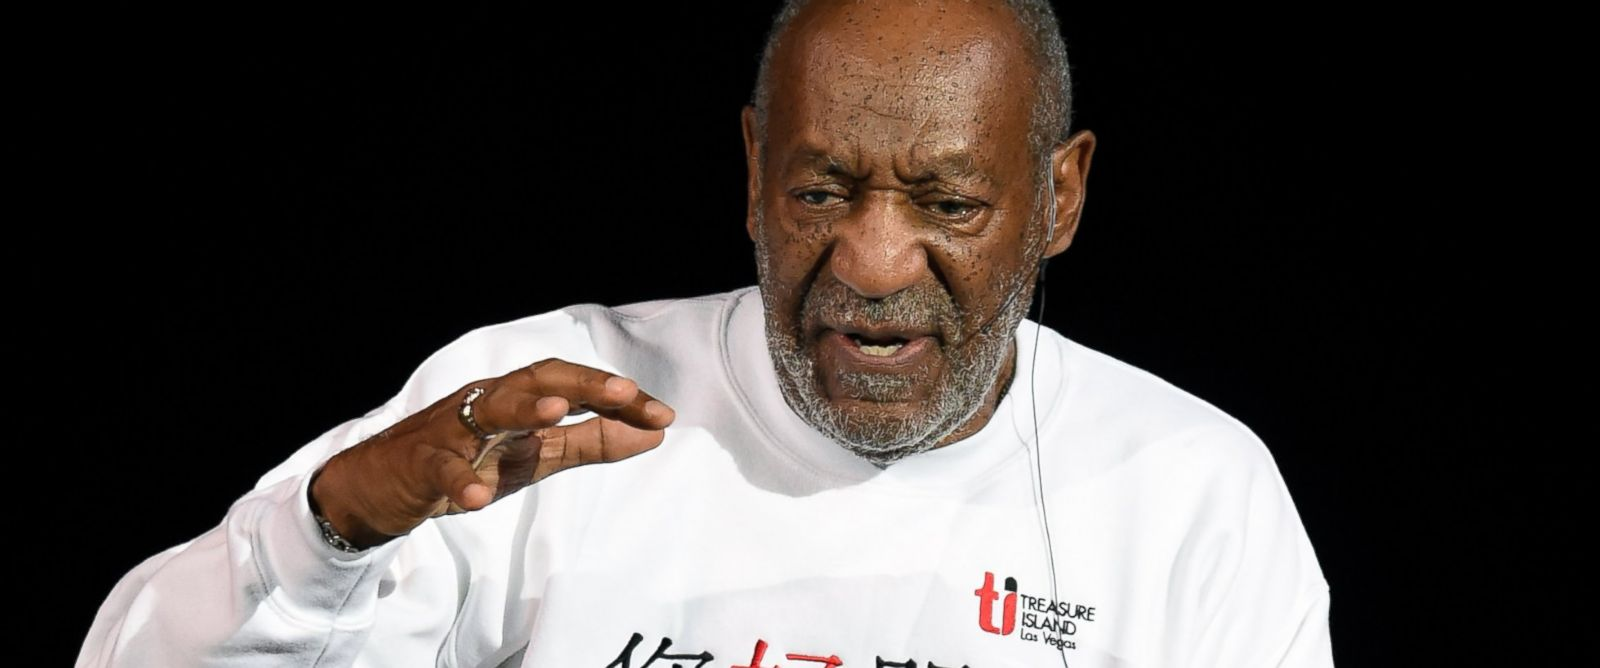 PHOTO: Bill Cosby performs at the Treasure Island Hotel & Casino on Sept. 26, 2014 in Las Vegas.